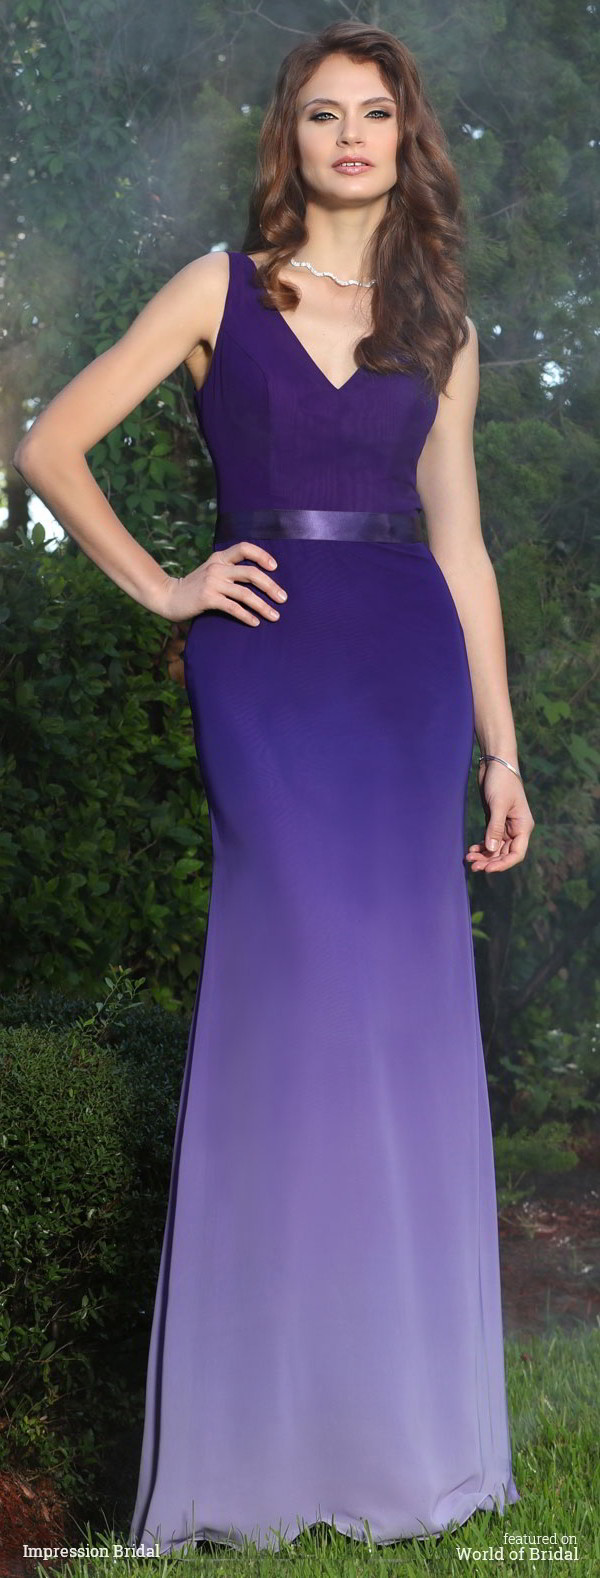 Impression Bridal 2016 Bridesmaid Dress